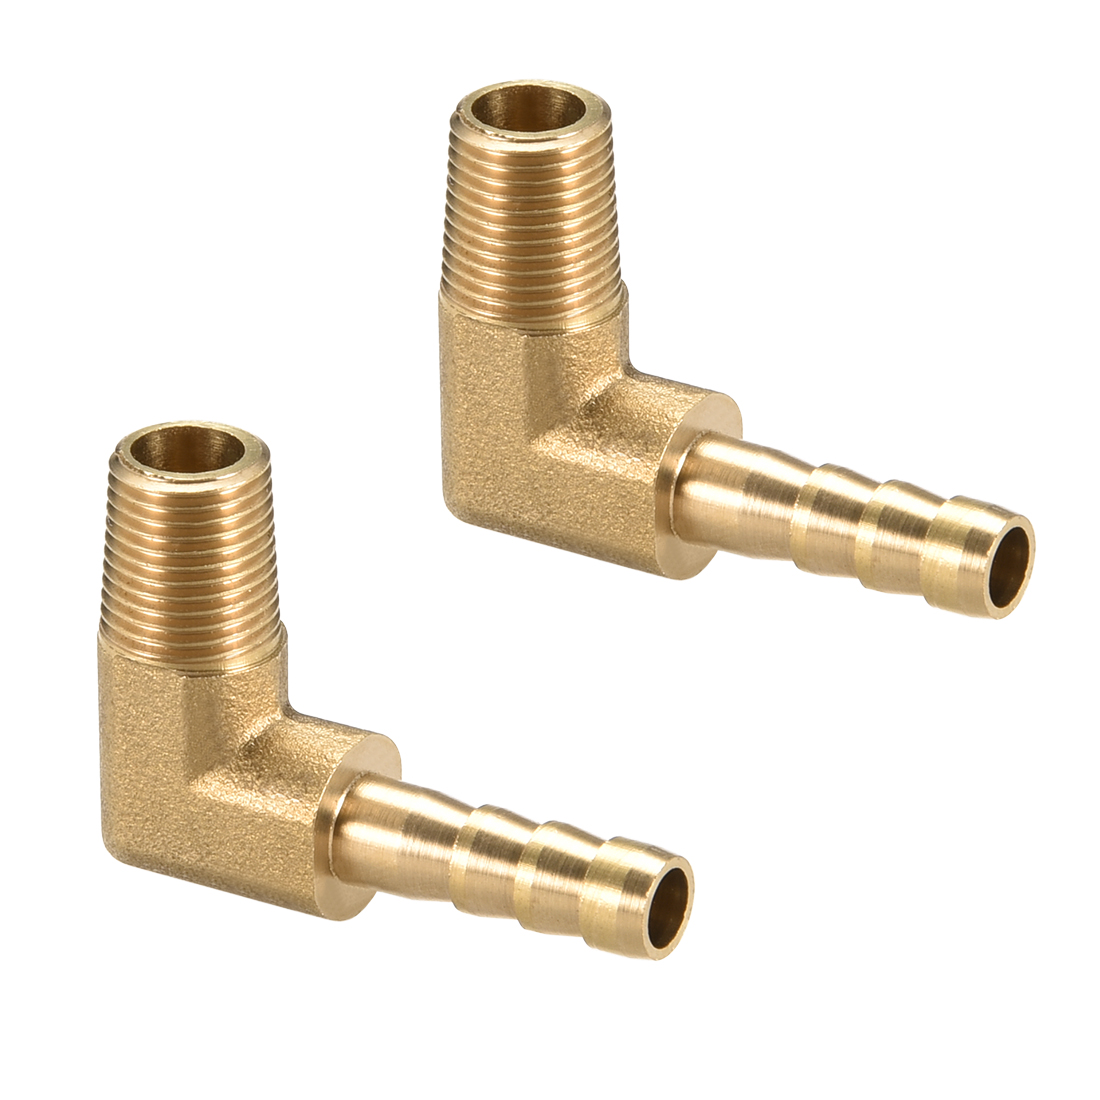 "Brass Barb Hose Fitting 90 Degree Elbow 6mm Barbed x 1/8"" G Male Pipe 2pcs"